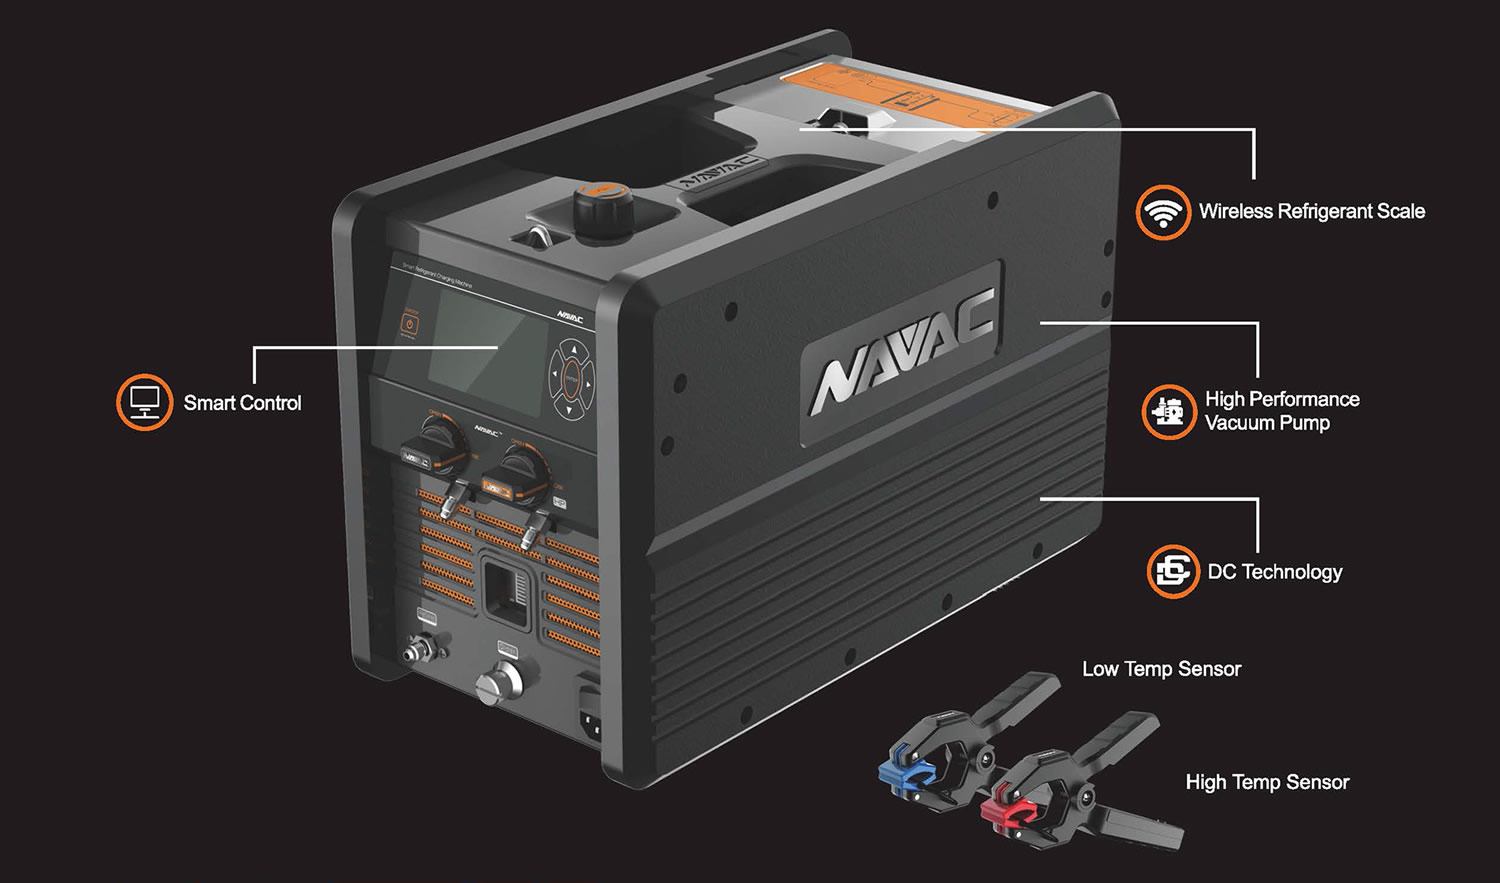 NAVAC NRC62D Smart Refrigerant Charging Machine